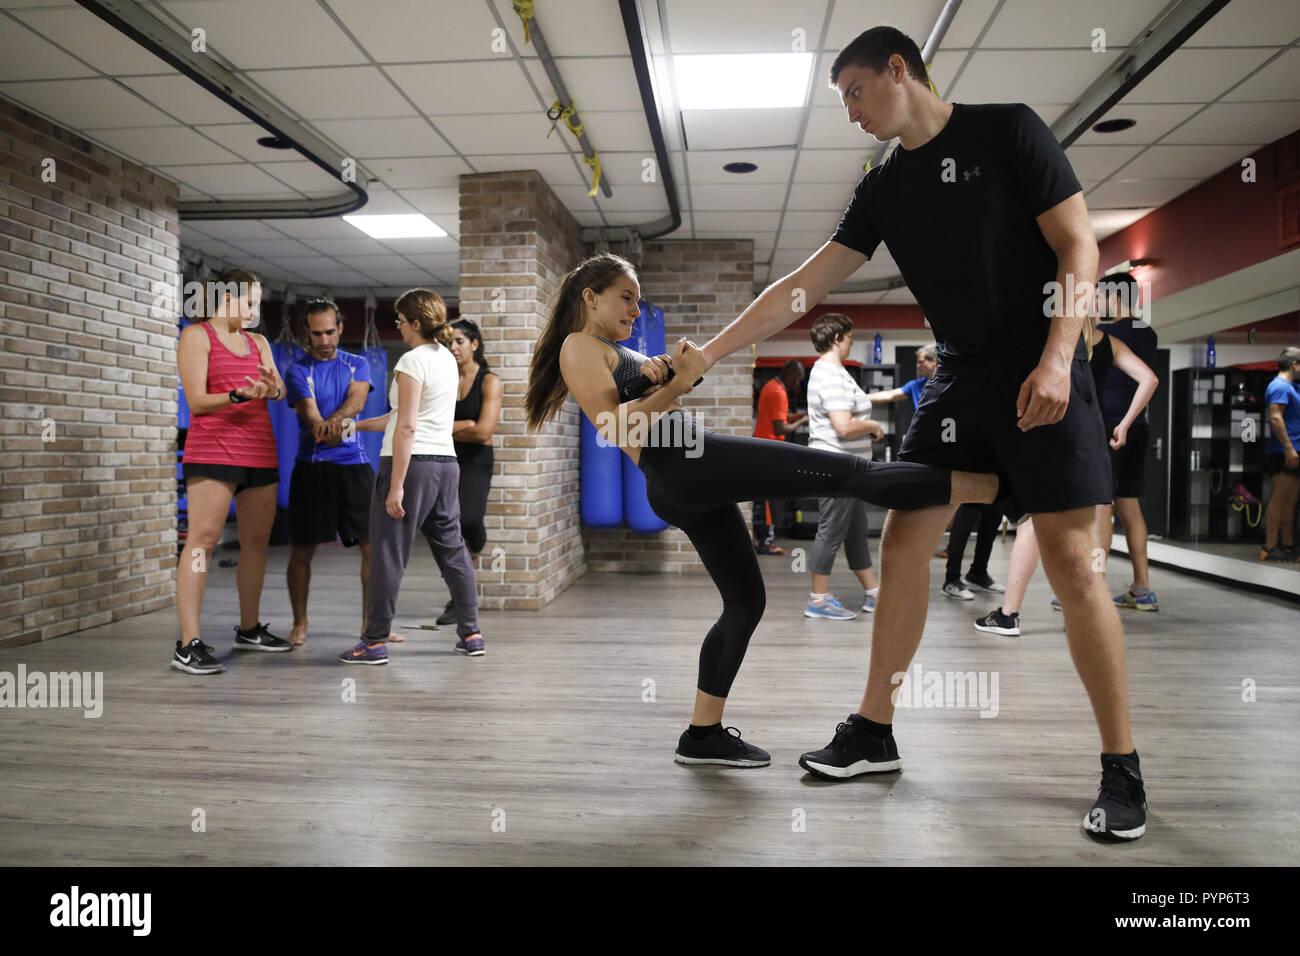 Tel Aviv, Israel. 31st July, 2018. Shana Cohen participates in a Krav Maga training. Krav Maga is a form of self-defence where the aim is to recognize dangers early on, to avoid conflicts and to defend oneself in an emergency. (to dpa-Story: Self-defence with Krav Maga from 30.10.2018) Credit: Corinna Kern/dpa/Alamy Live News - Stock Image